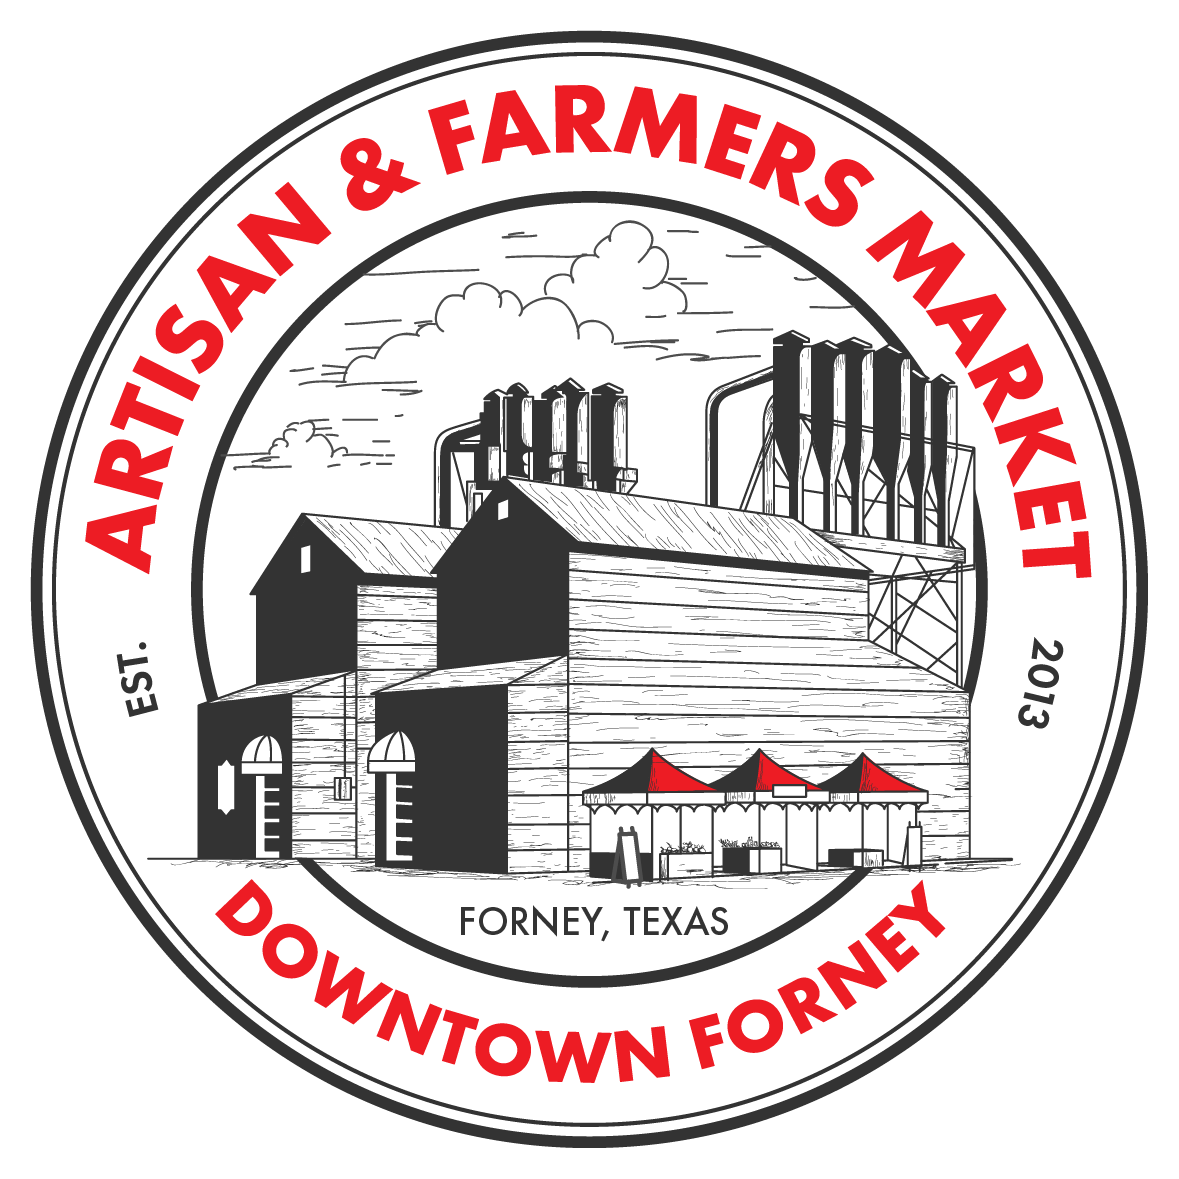 Downtown Forney: Artisan & Farmers Market